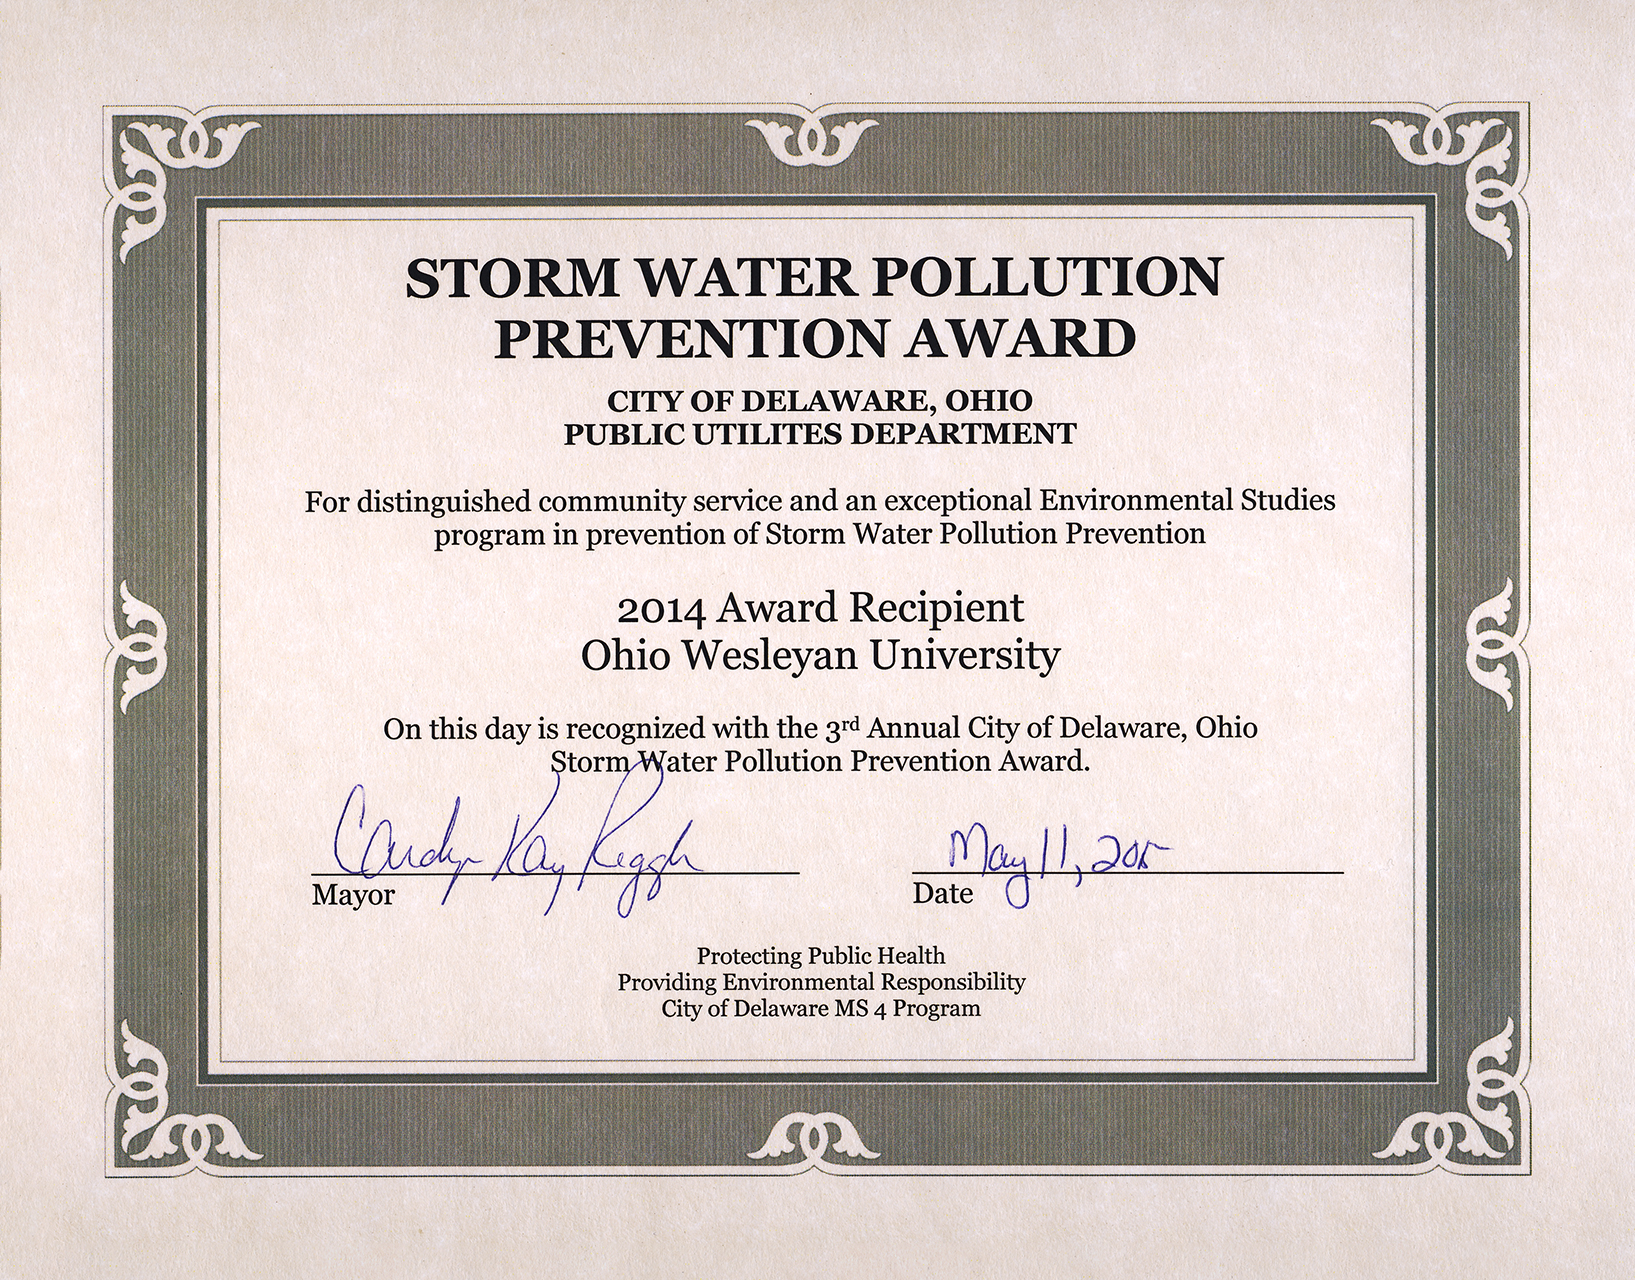 OWU's Environmental Studies Wins Storm Water Prevention Award